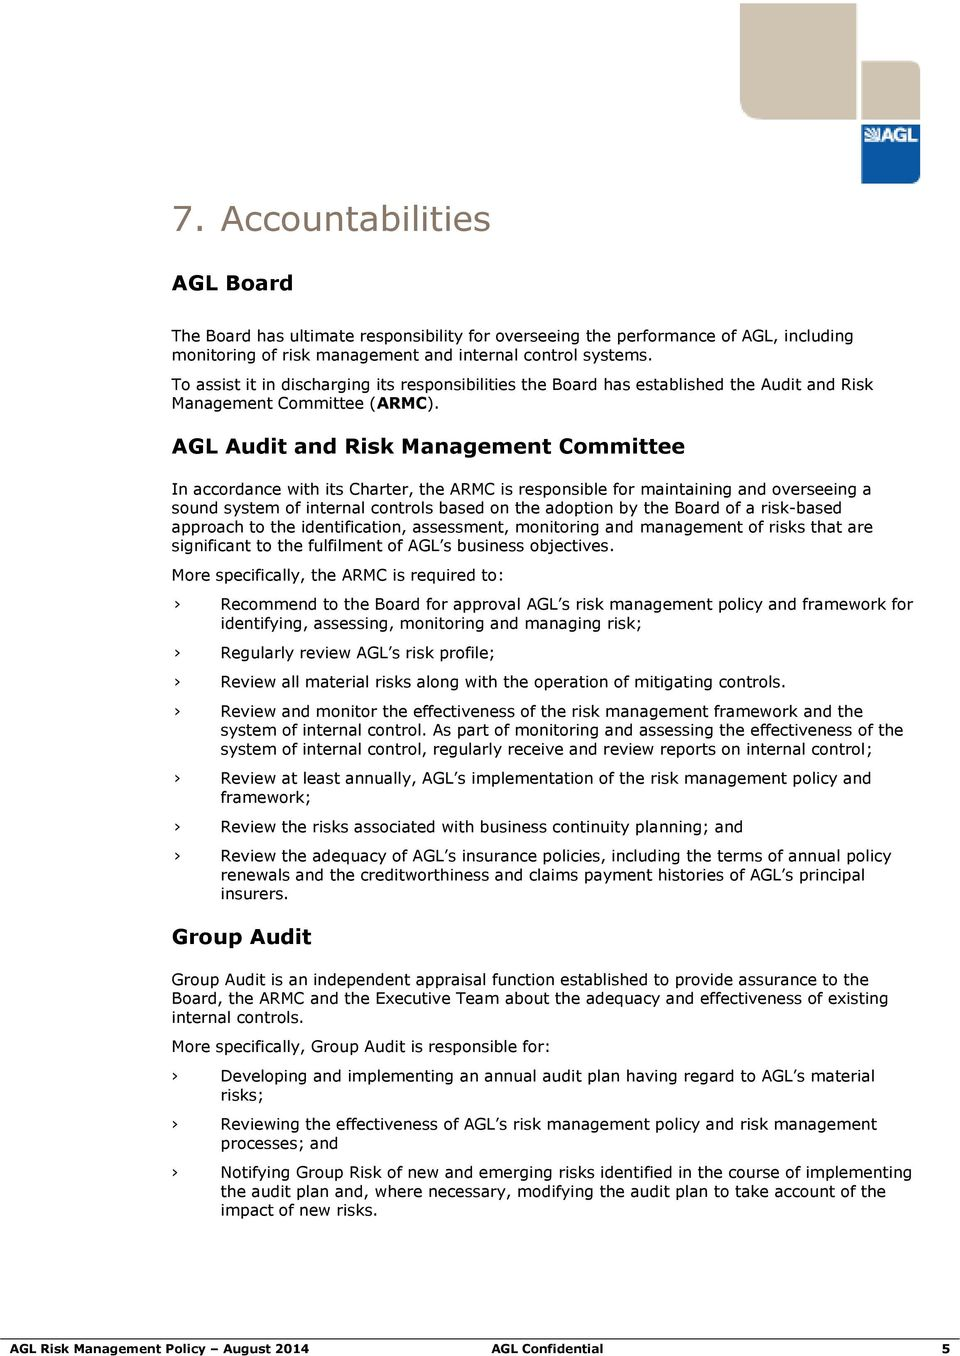 AGL Audit and Risk Management Cmmittee In accrdance with its Charter, the ARMC is respnsible fr maintaining and verseeing a sund system f internal cntrls based n the adptin by the Bard f a risk-based